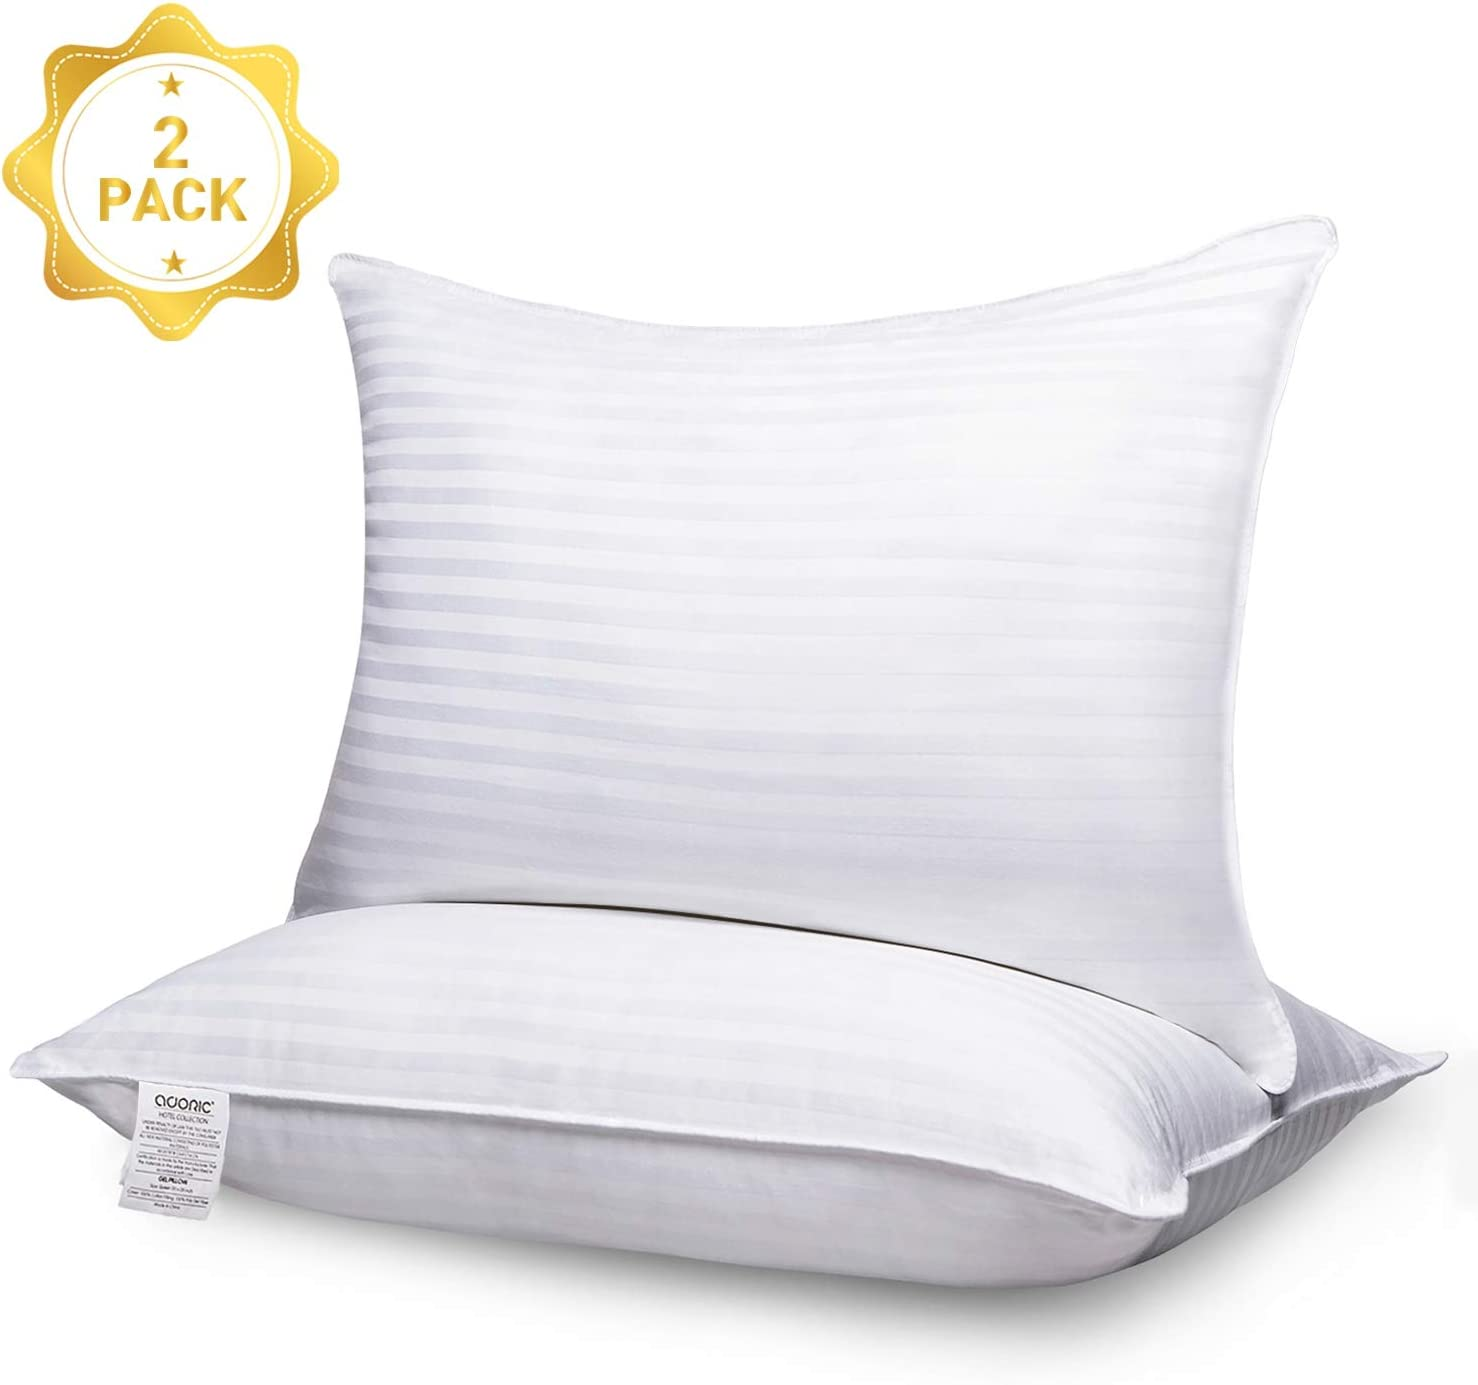 Adoric Pillows for Sleeping, 2 Pack Standard Premium Hotel Bed Pillows, Breathable Cotton Cover Skin-Friendly Down Alternative Pillow Good for Side and Back Sleeper 20 x 26 White